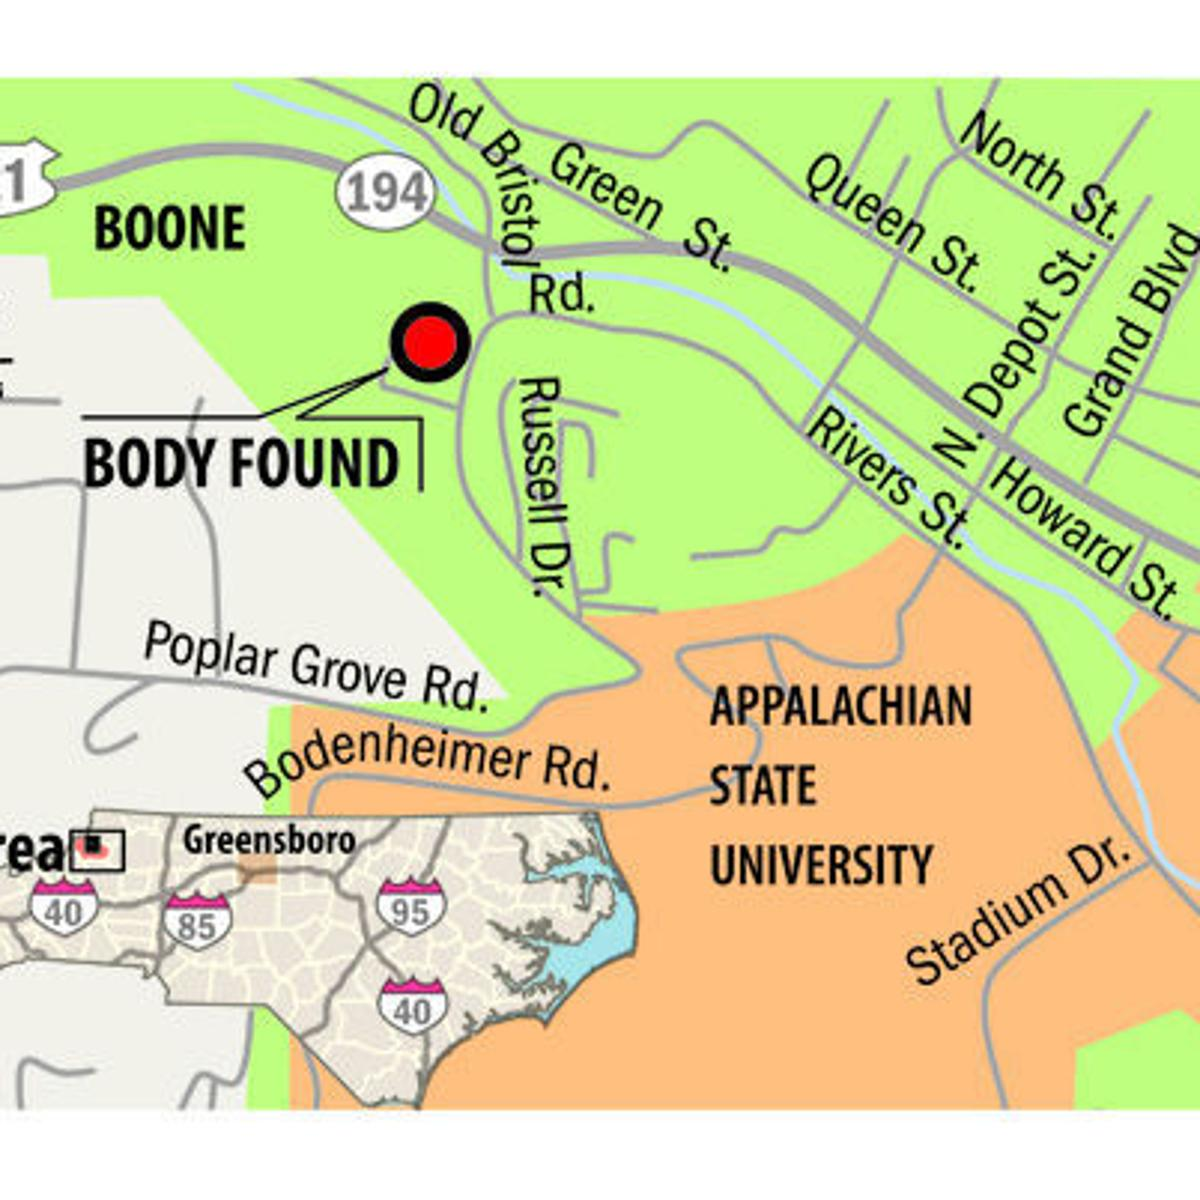 NC police find ID cards for ASU student with body | Local